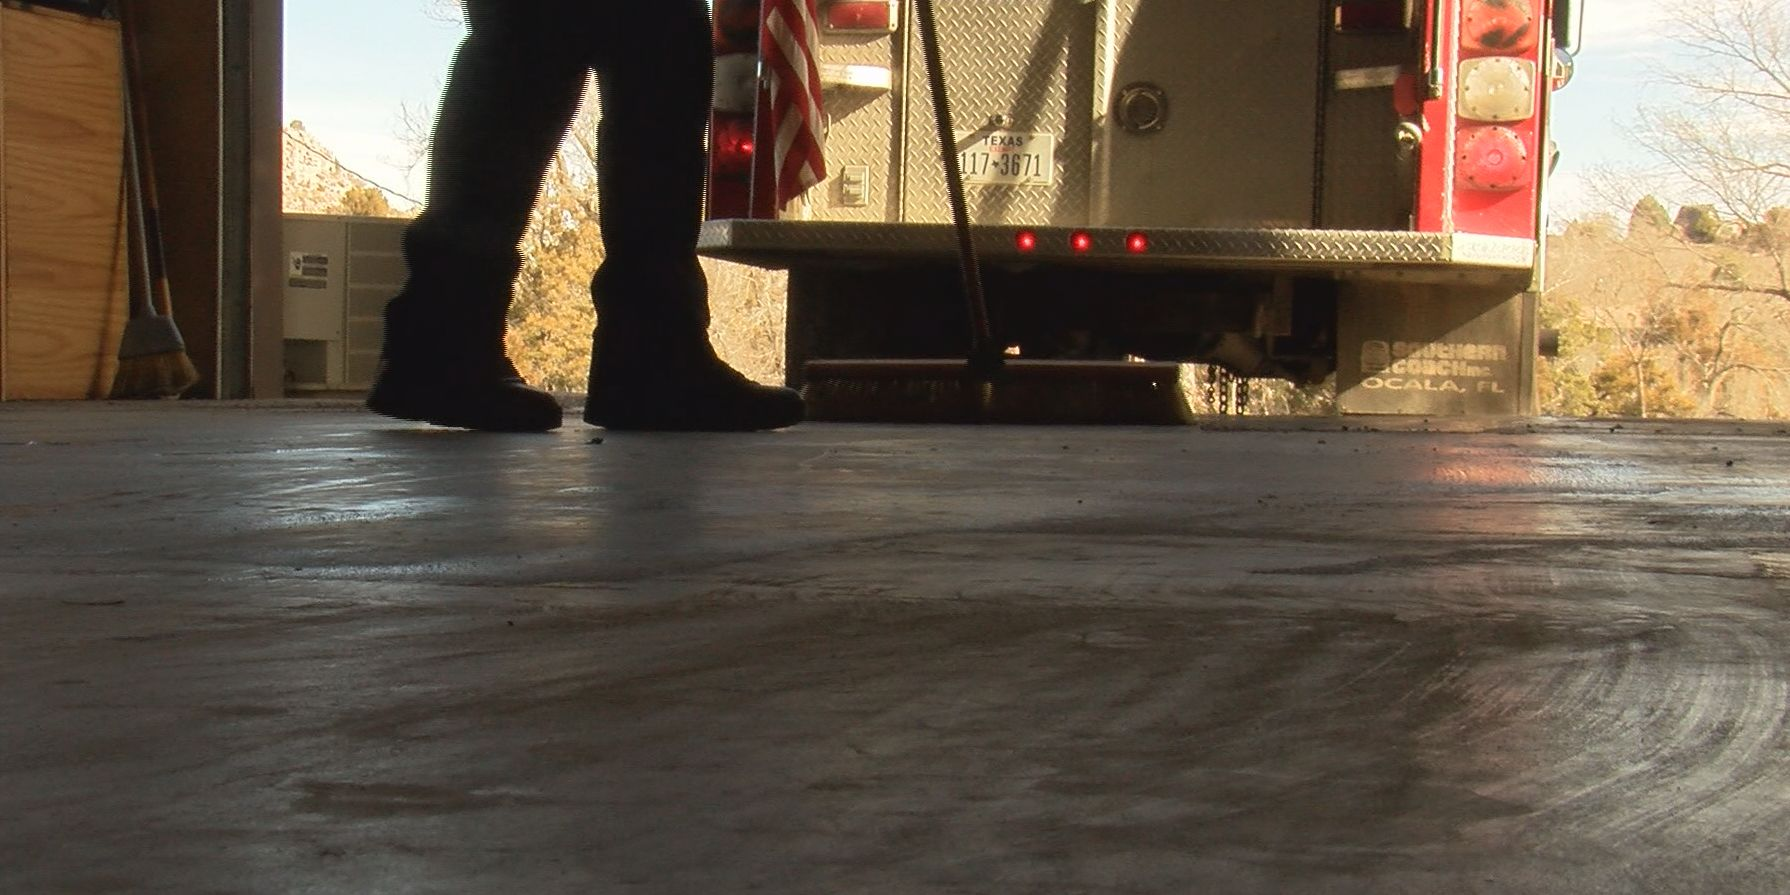 TX Panhandle fire departments struggling to train, field new volunteers